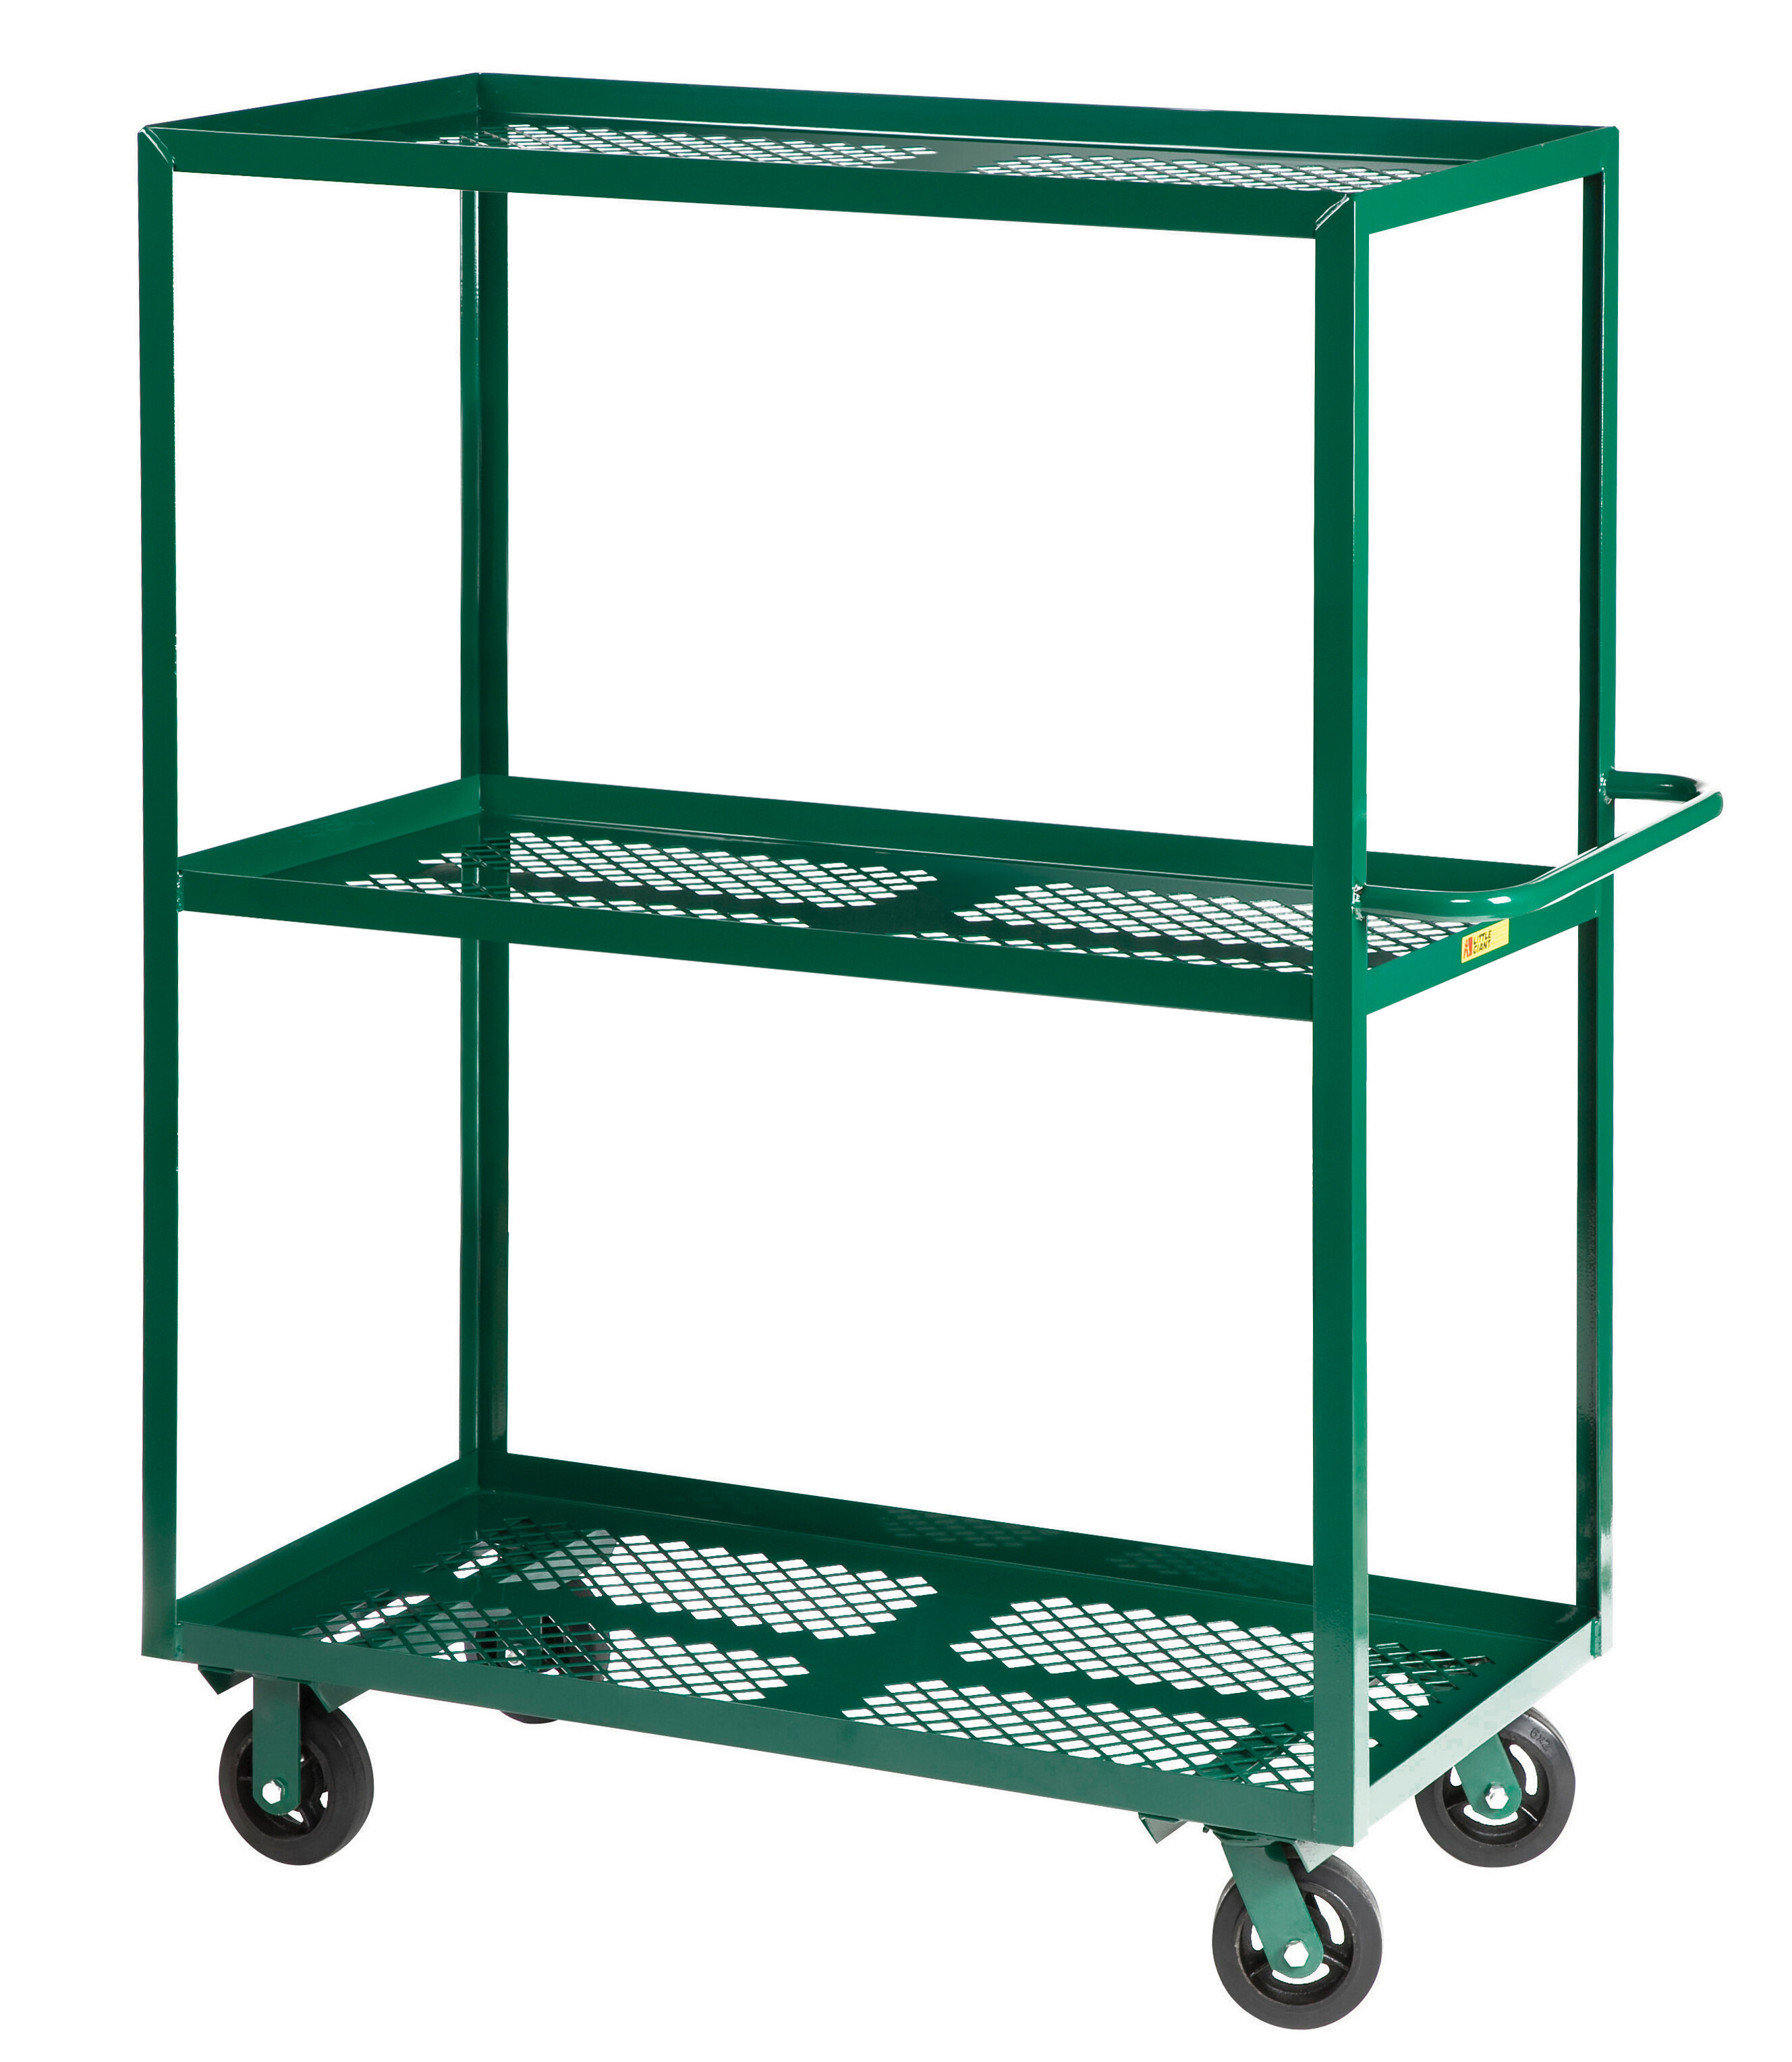 Little Giant Usa 30 X 65 5 Multi Shelf Steel Utility Cart Wayfair